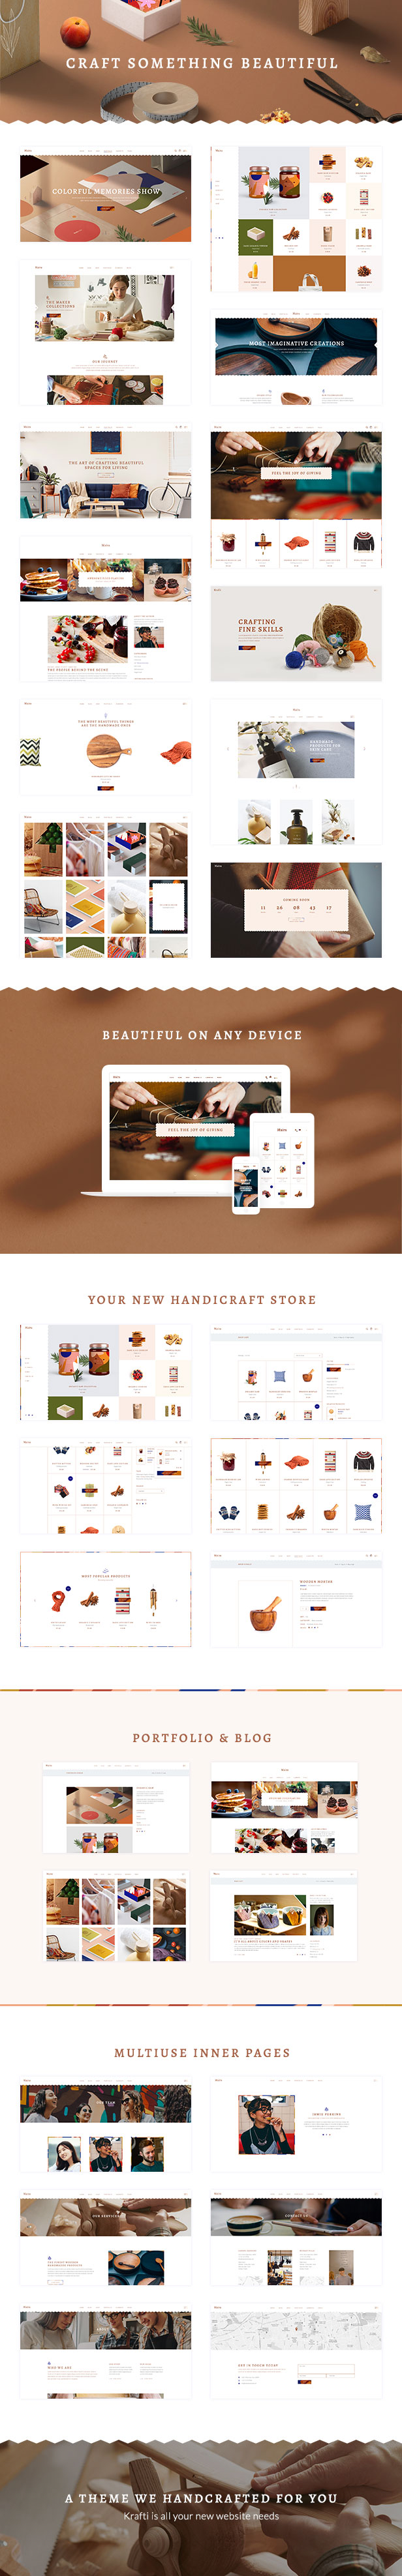 Krafti - Arts & Crafts WordPress Theme - 1